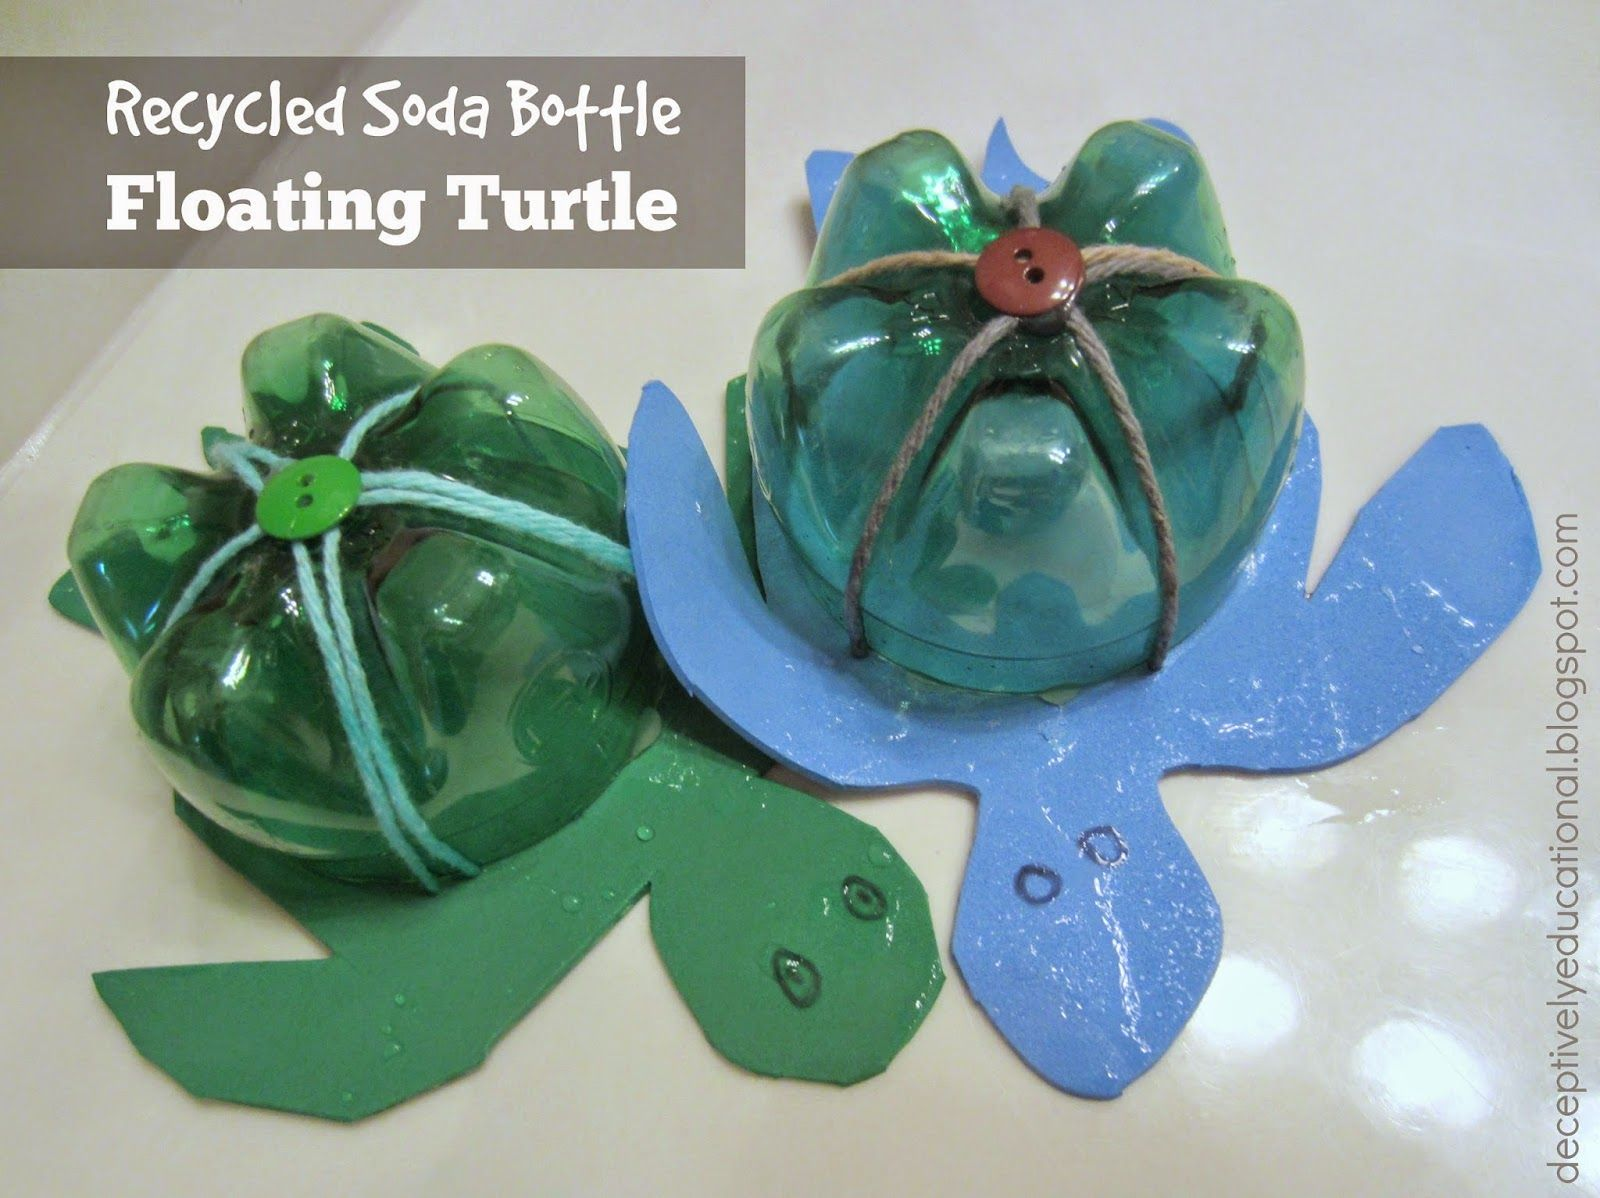 Recycled Soda Bottle Floating Turtle Relentlessly Fun